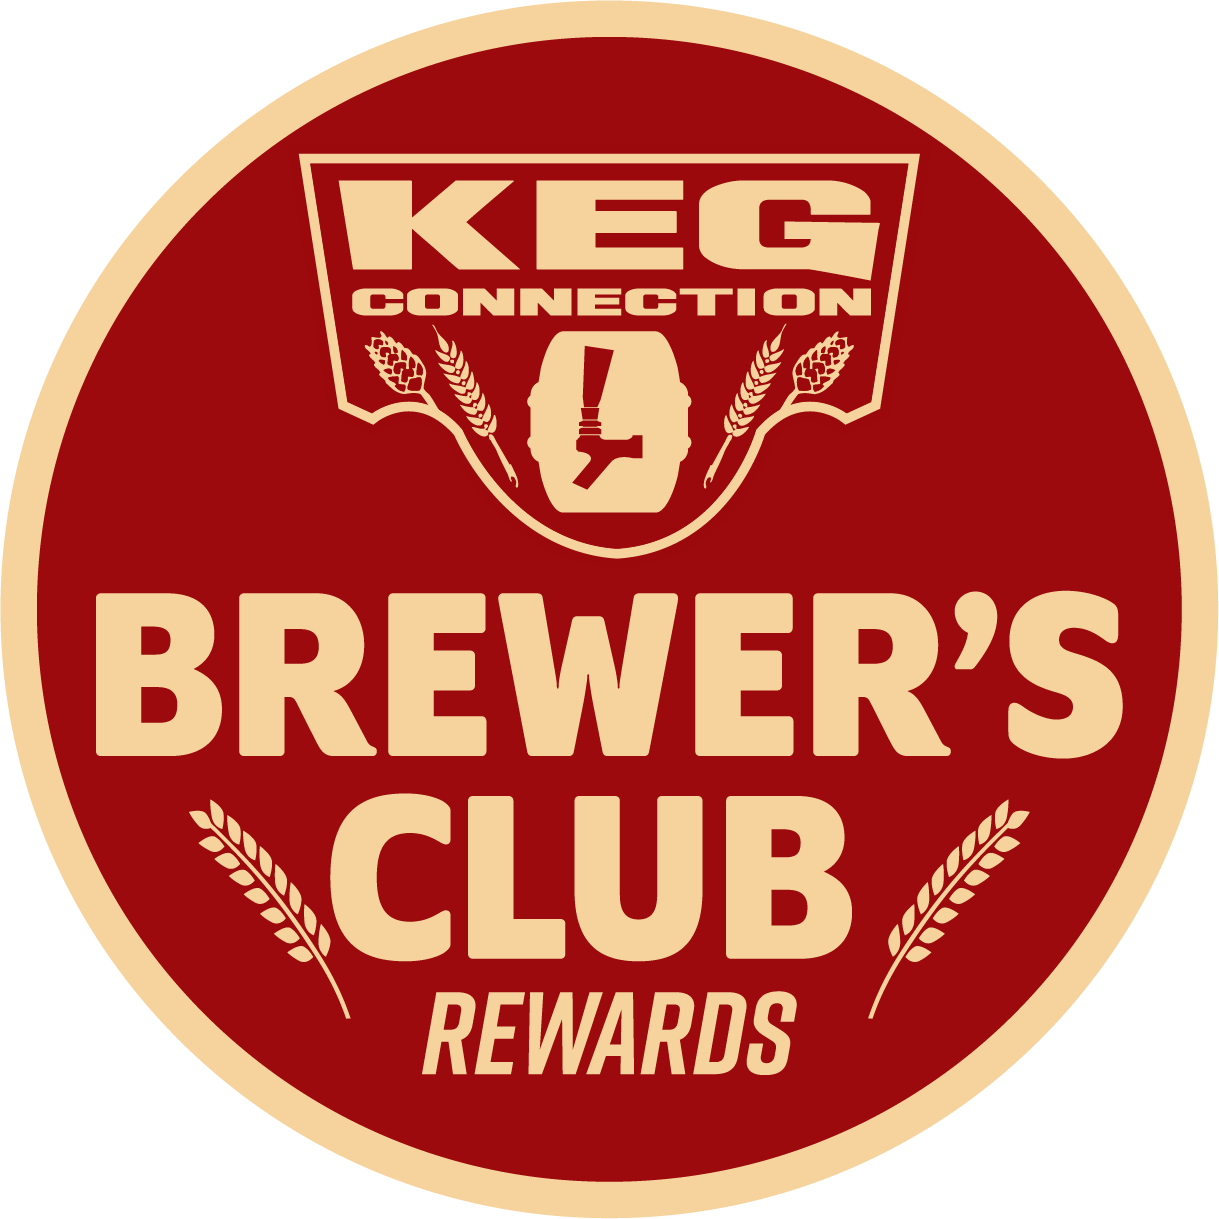 kegconnection-brewers-club-rewards-.png